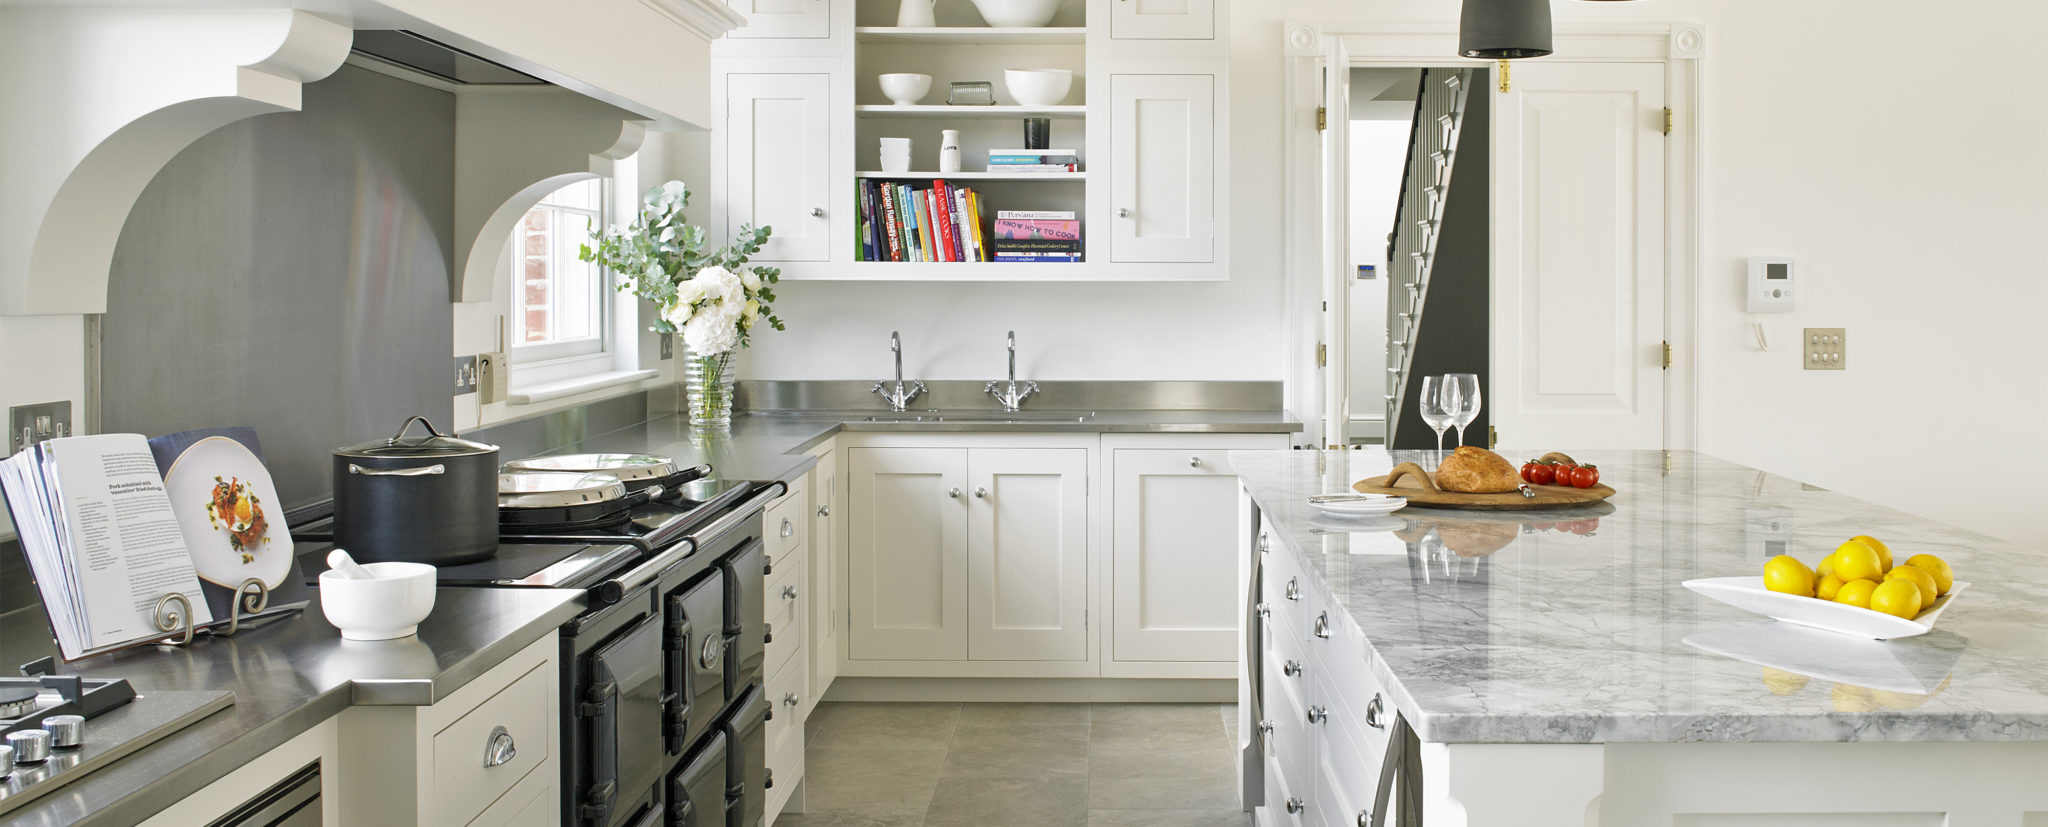 Modern white country style kitchen with AGA range cooker in chimney alcove with extractor, stainless steel and super white quartzite worktops. Strong white shaker kitchen cabinets with traditional cup handles and pulls in polished chrome.